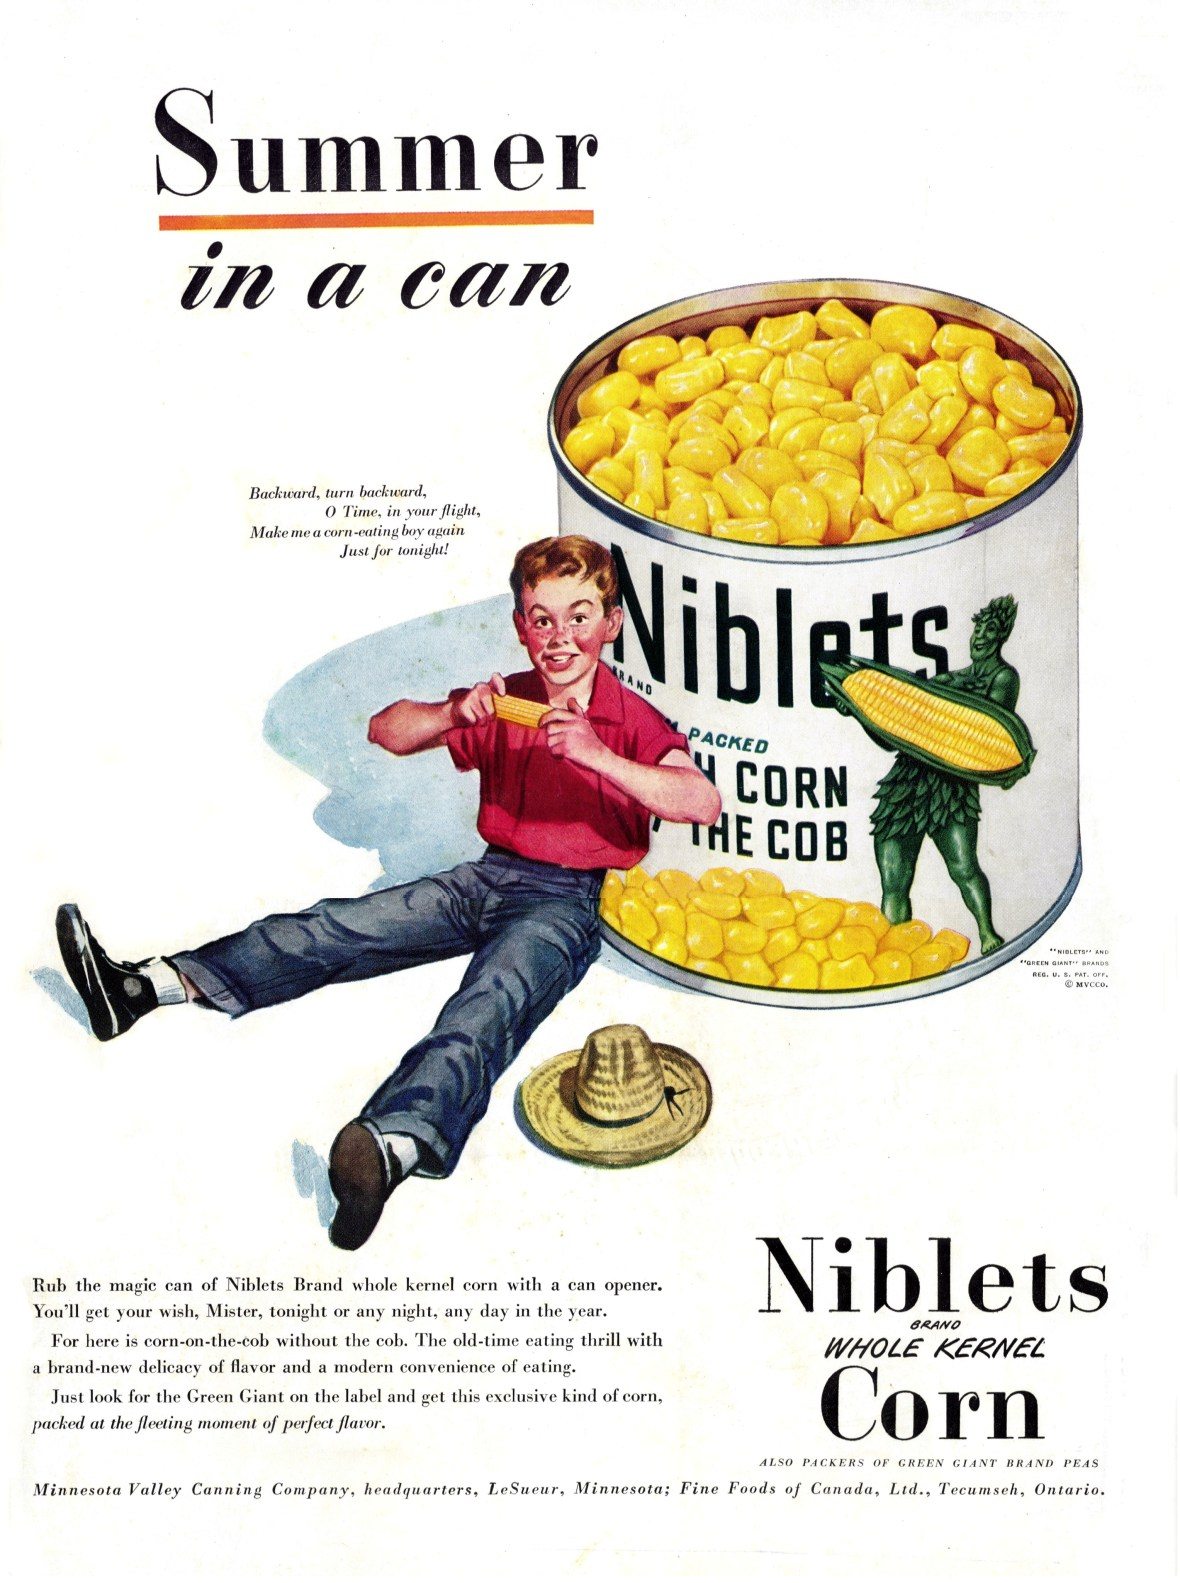 Green Giant Niblets Corn - published in Life - July 1947